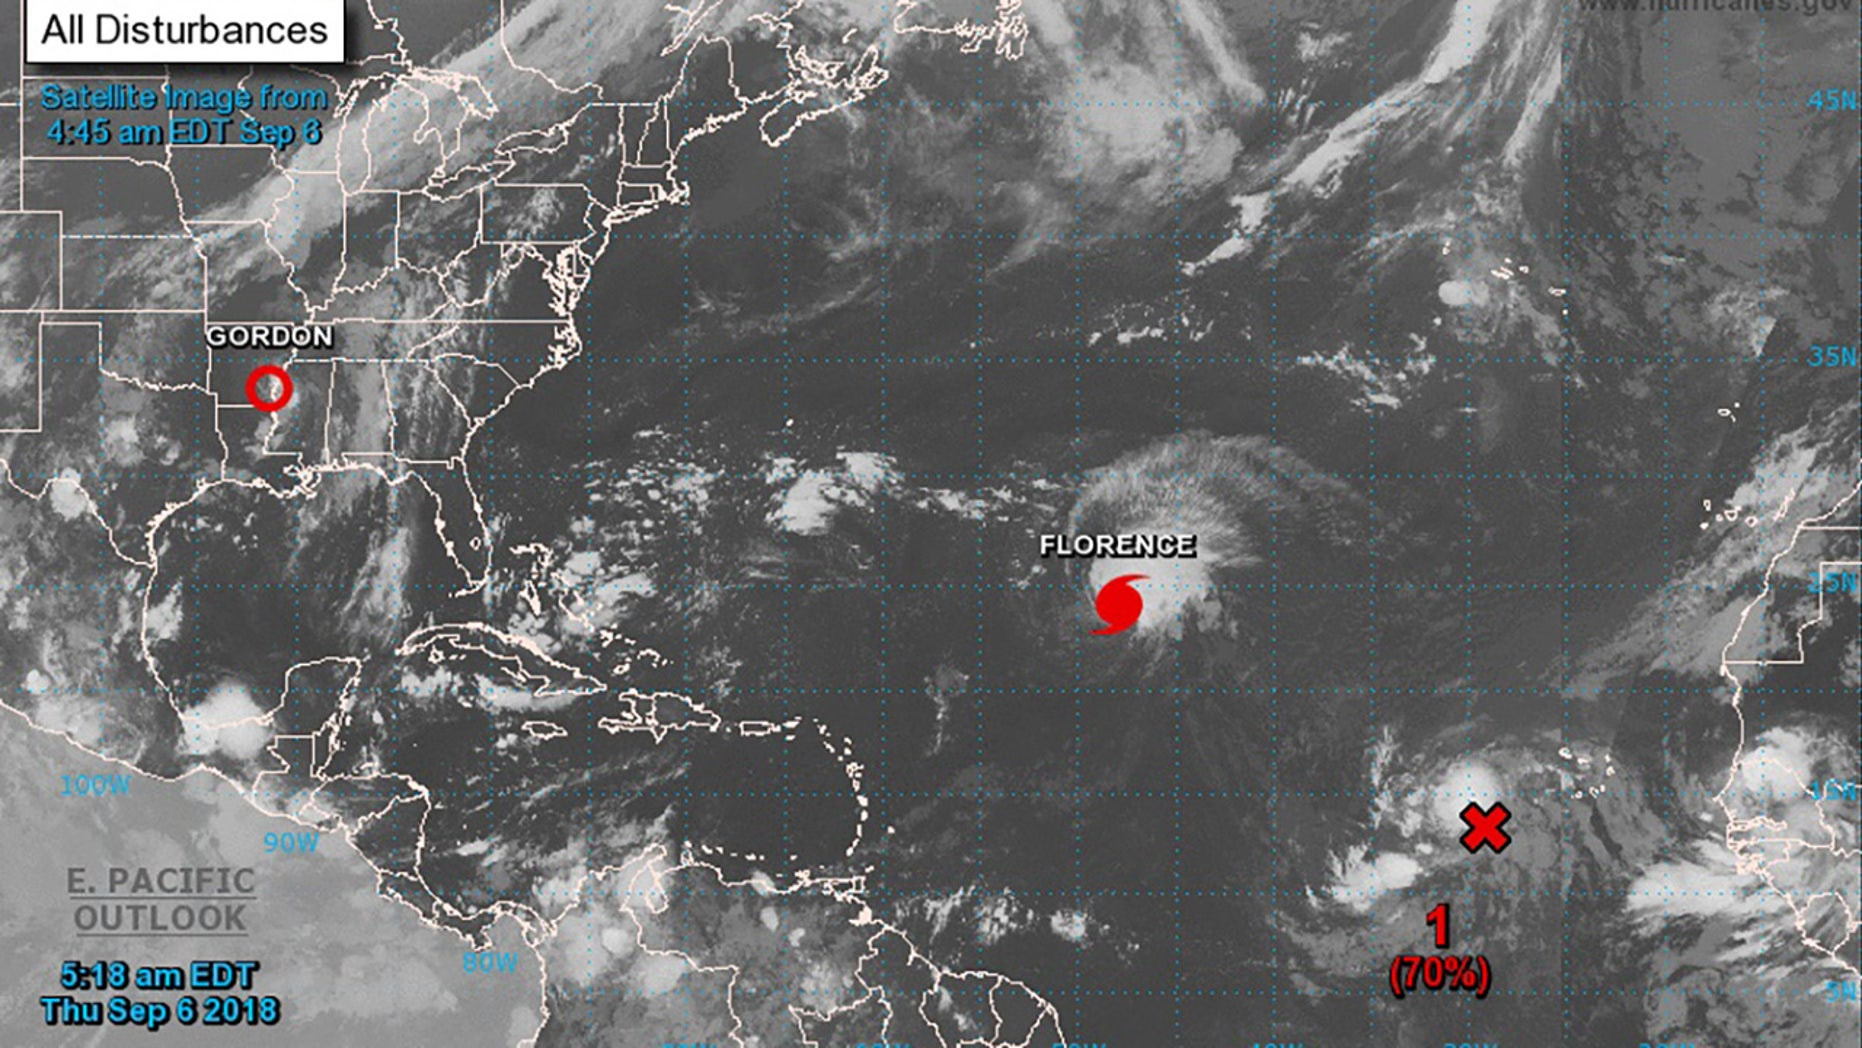 This satellite image shows Hurricane Florence in the North Atlantic Ocean Thursday morning.